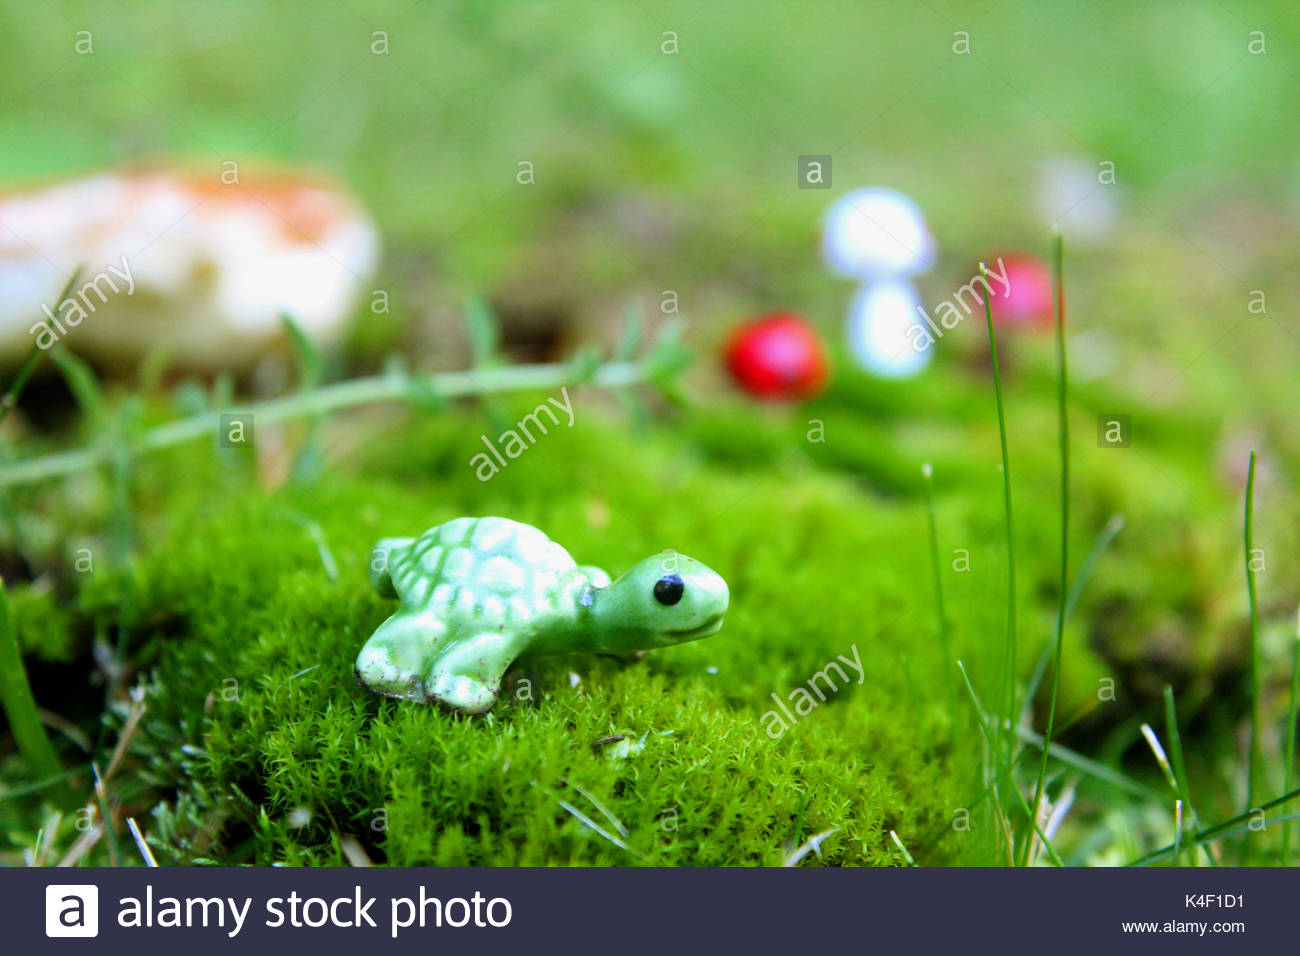 Mystical Forest with Turtle - Stock Image